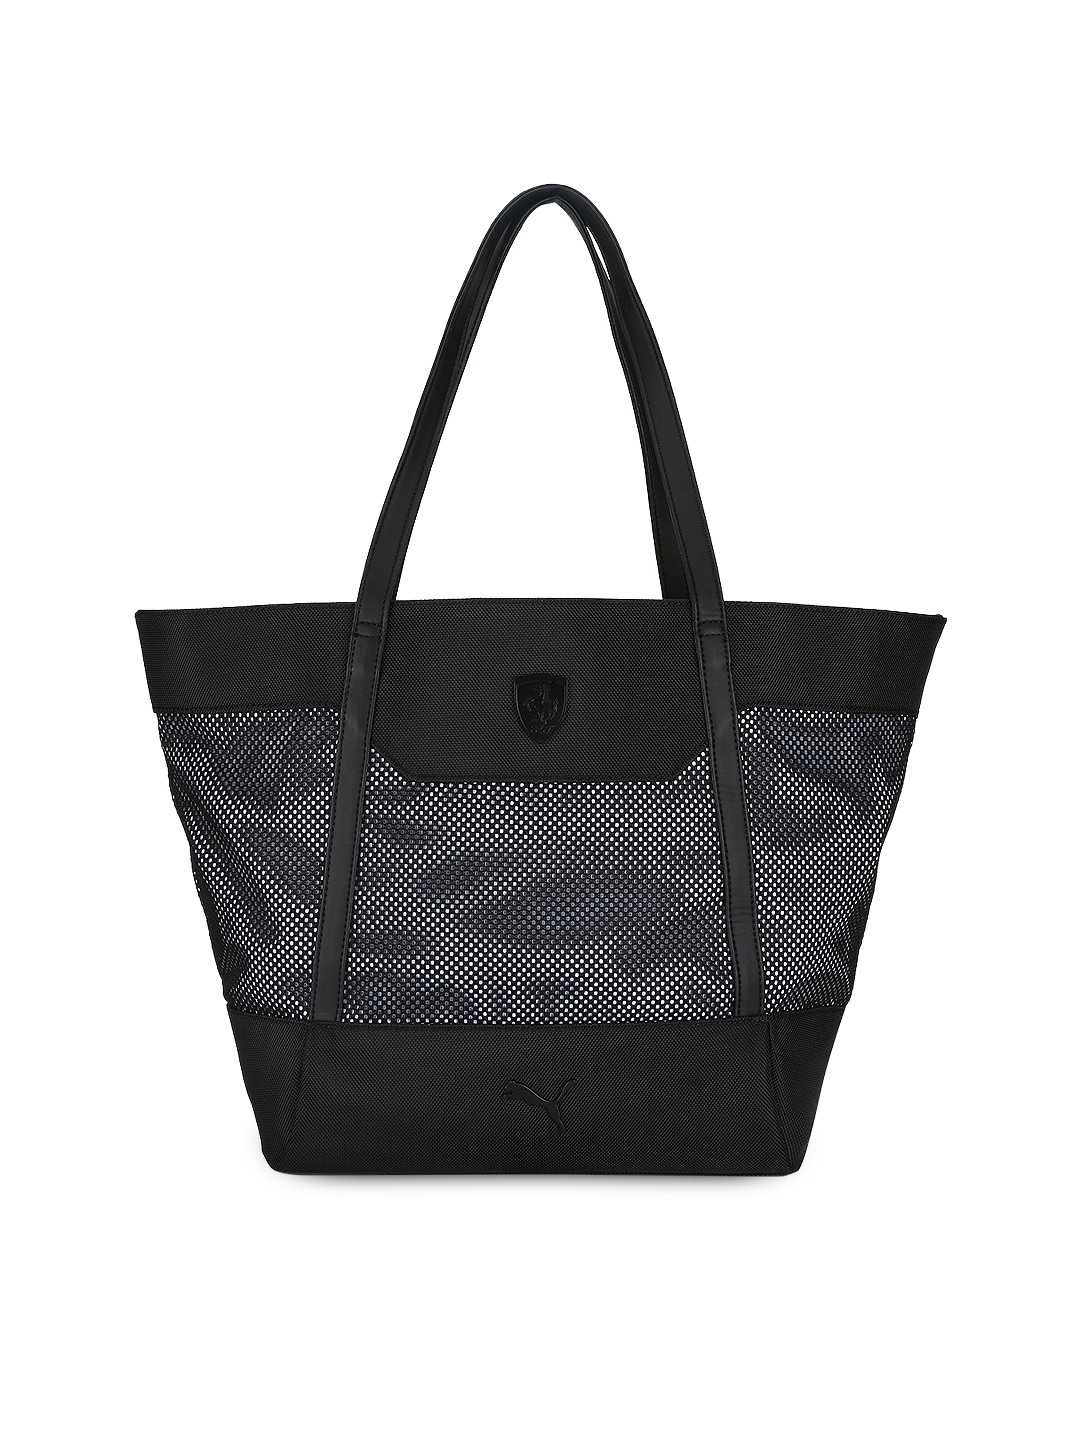 Puma Ferrari Handbags - Buy Puma Ferrari Handbags online in India fc48ddc302